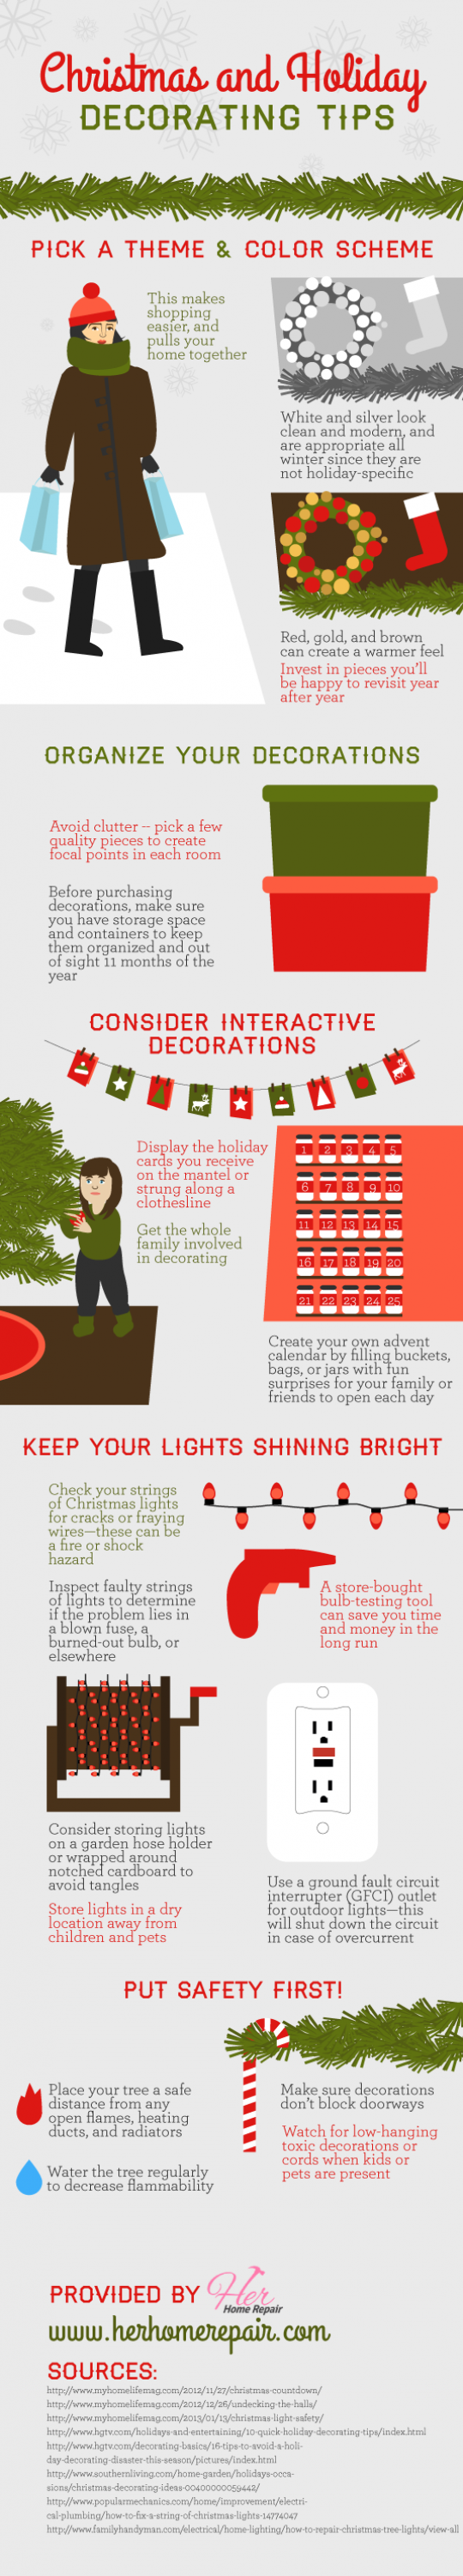 Christmas and Holiday Decorating Tips